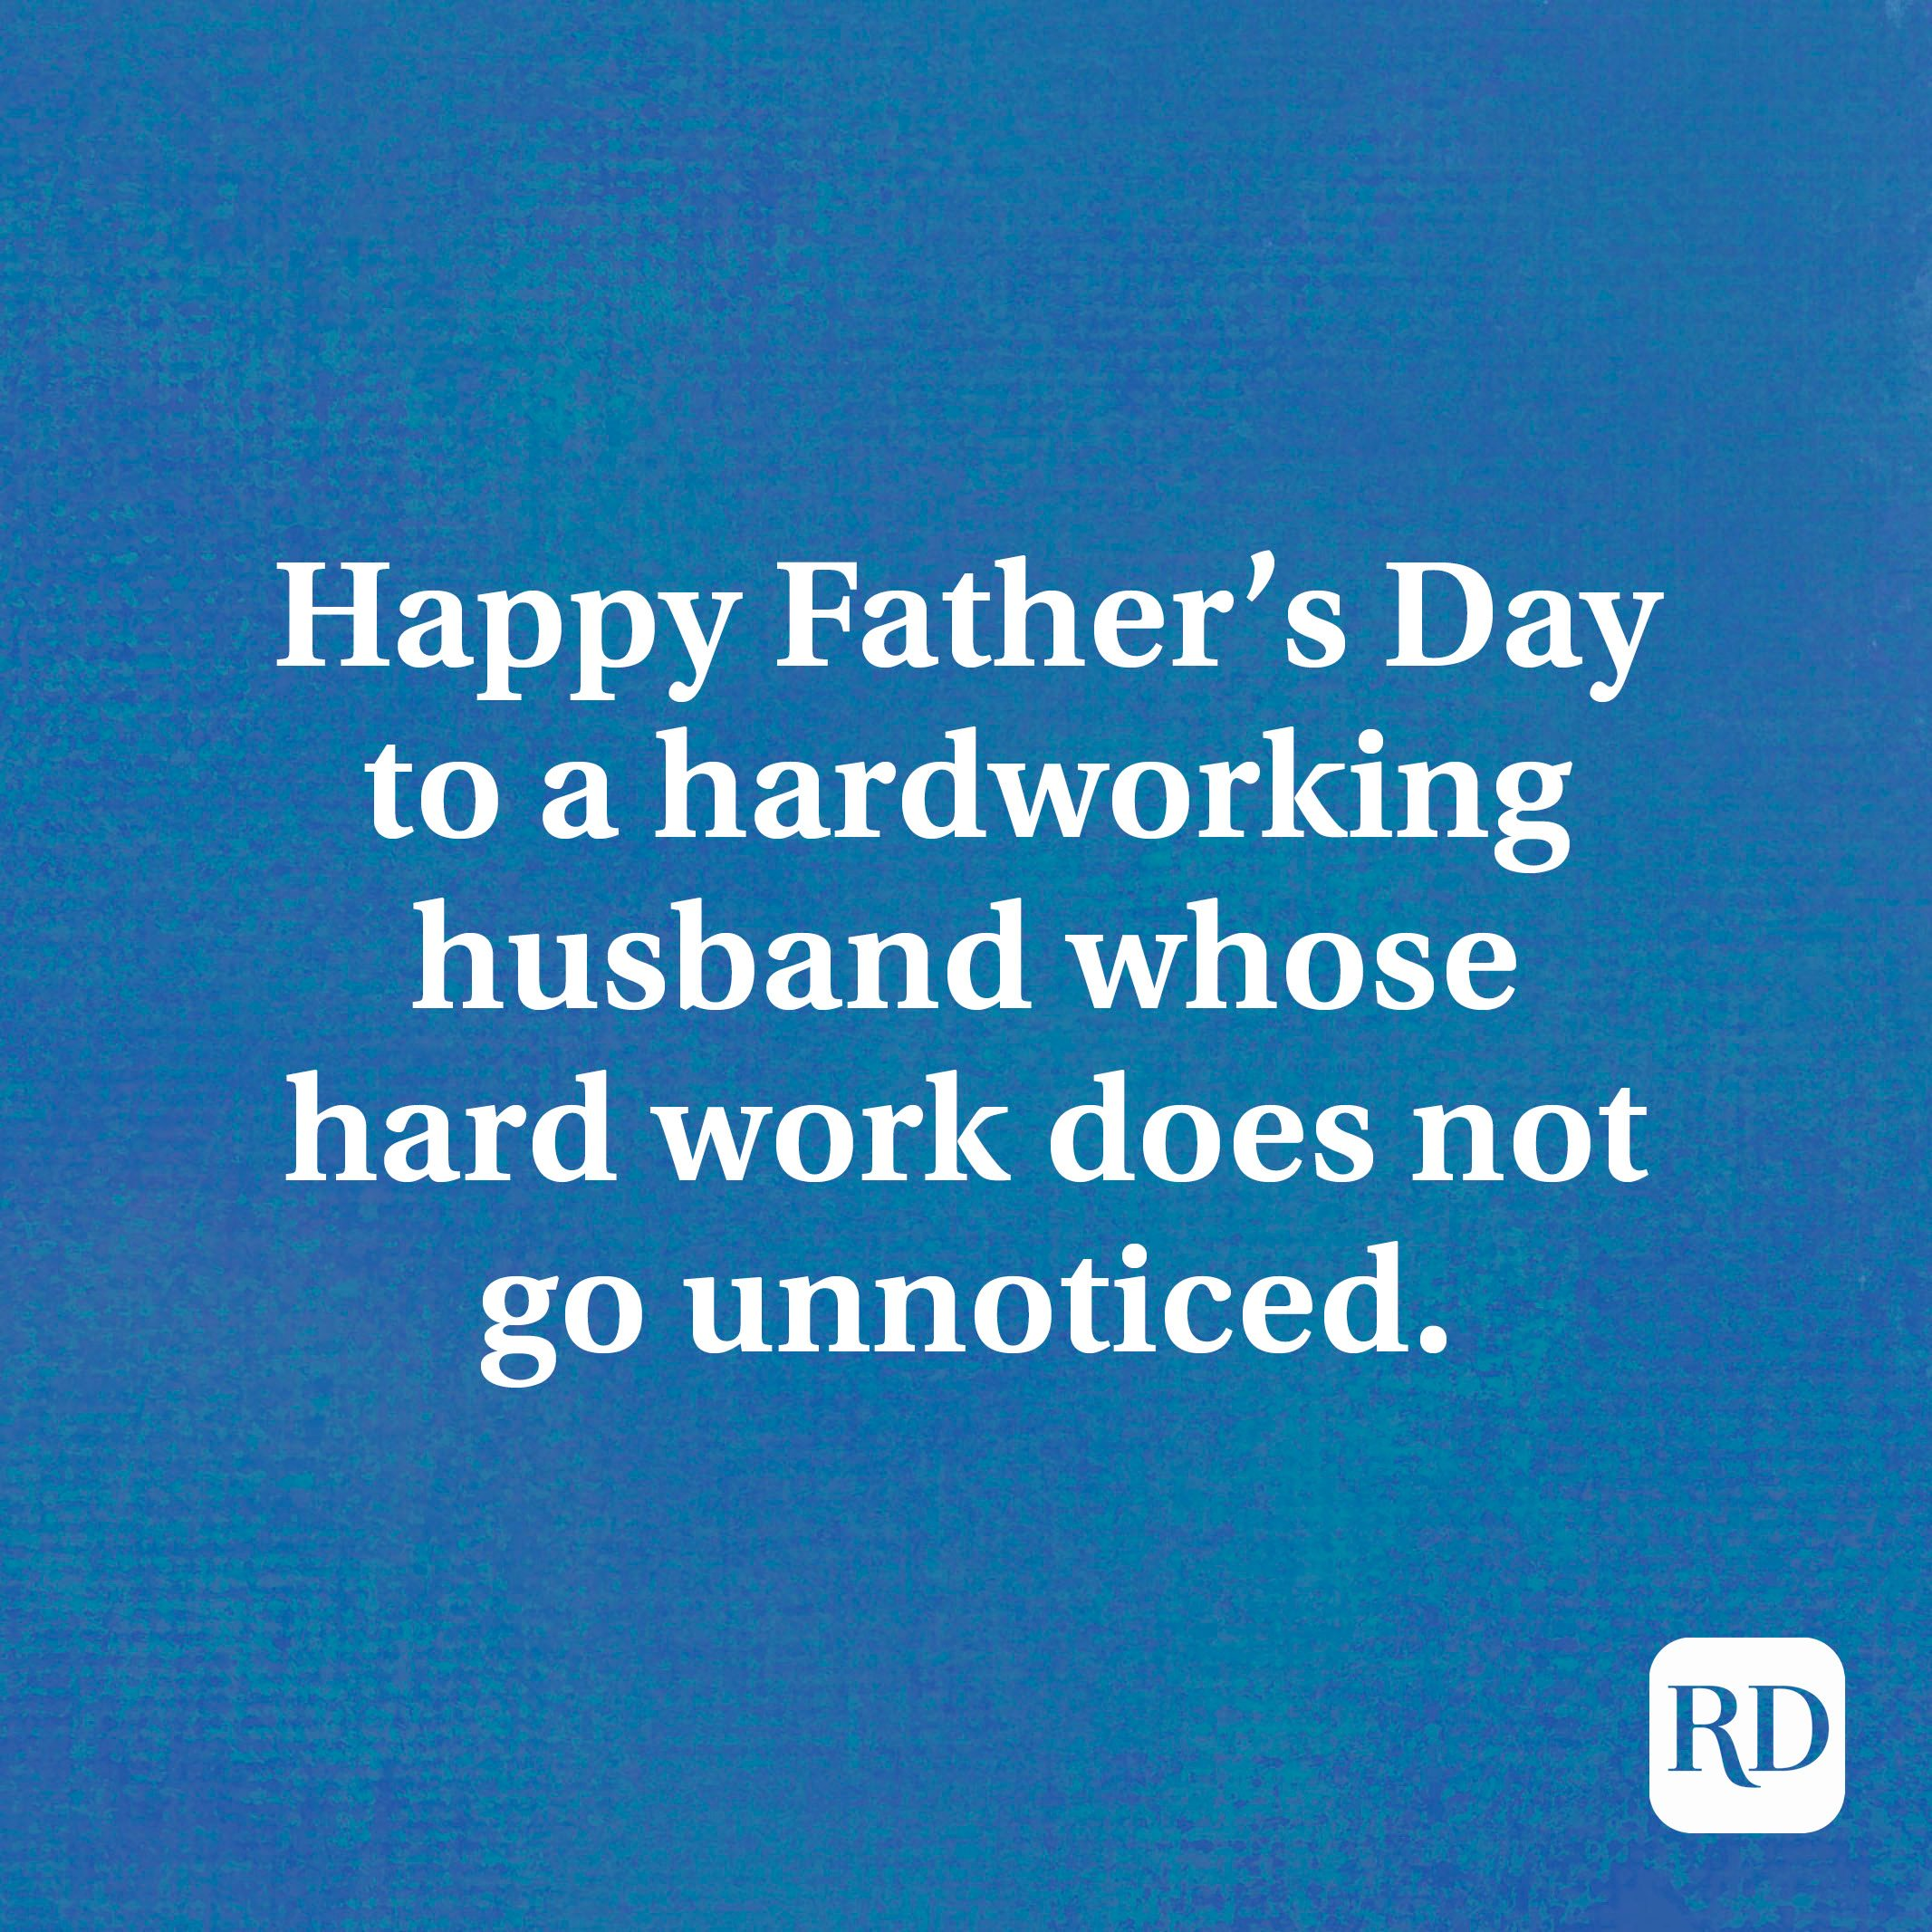 Happy Father's Day to a hardworking husband whose hard work does not go unnoticed.